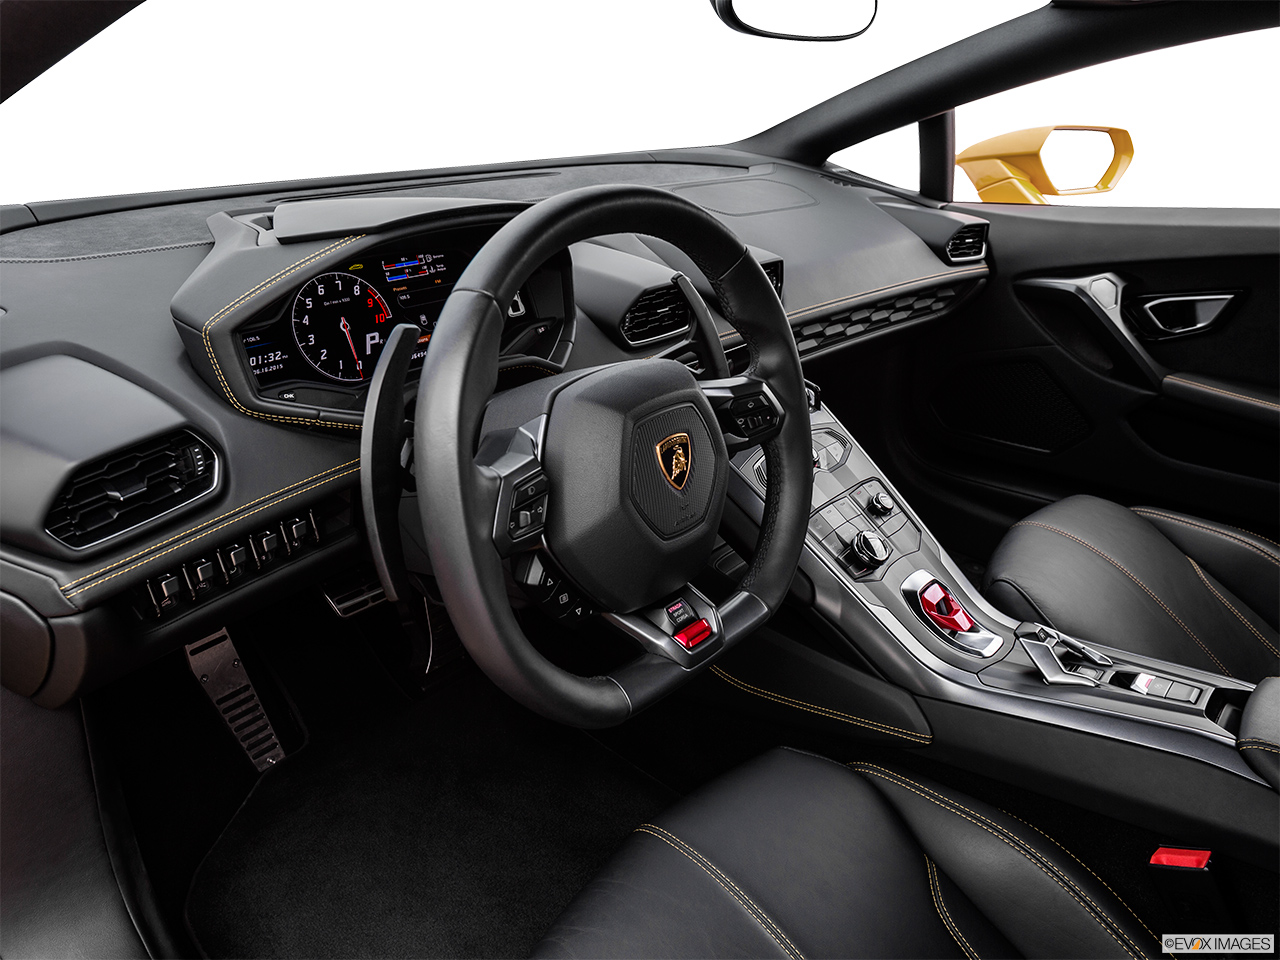 2015 Lamborghini Huracan LP 610-4 Interior Hero (driver's side).